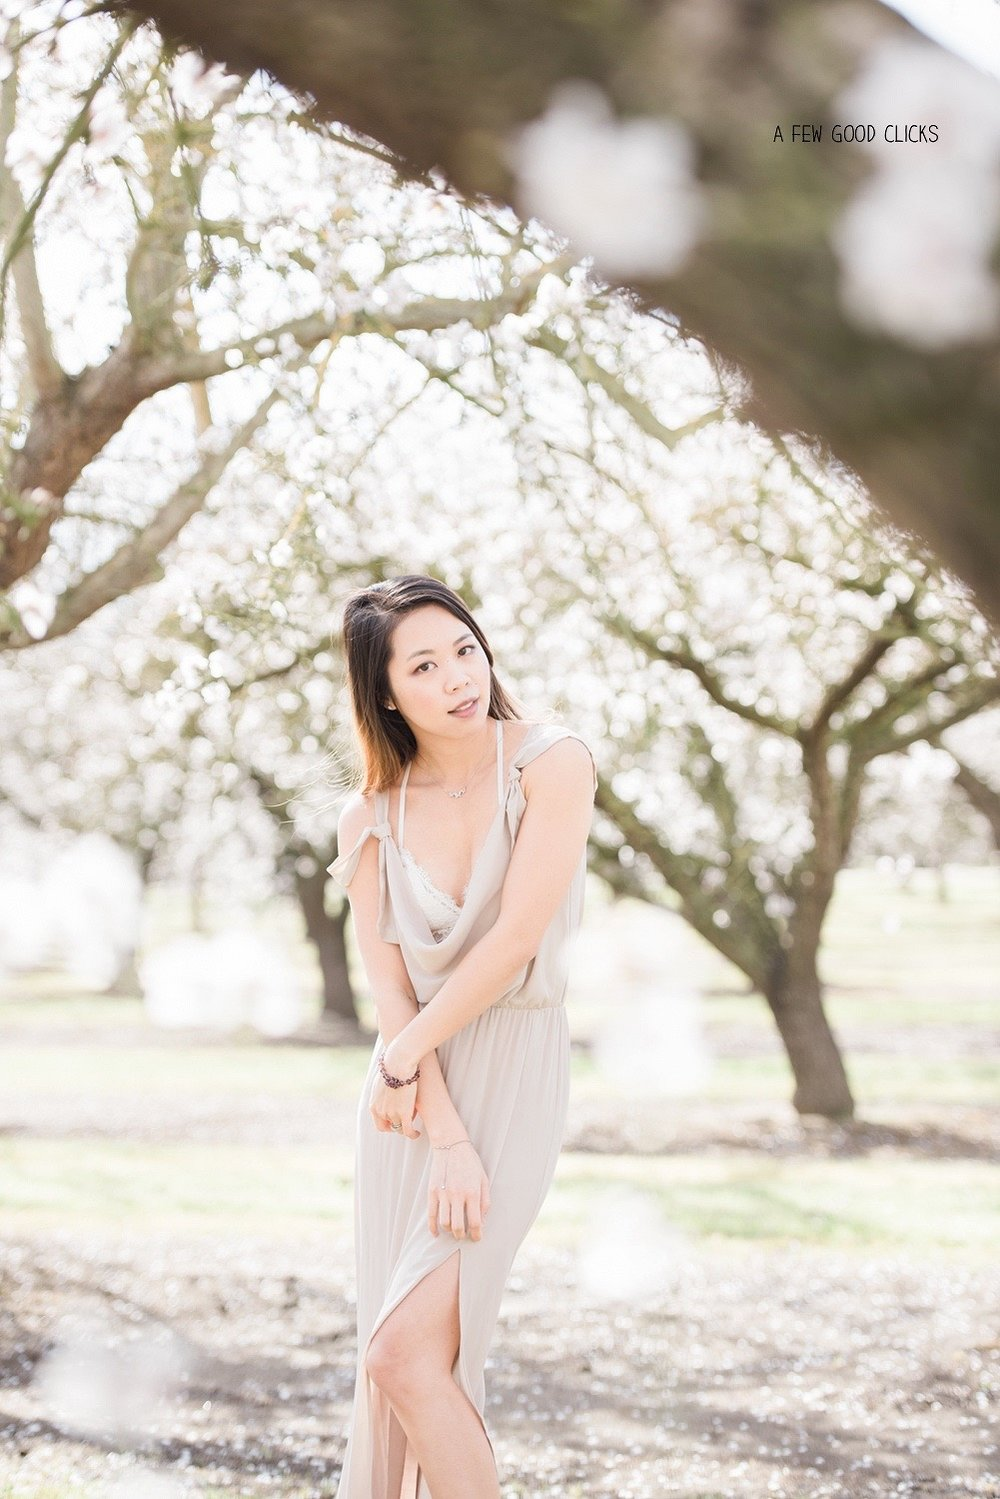 almond-blossom-lifestyle-portrait-photography-by-afewgoodclicks-net-24.jpg